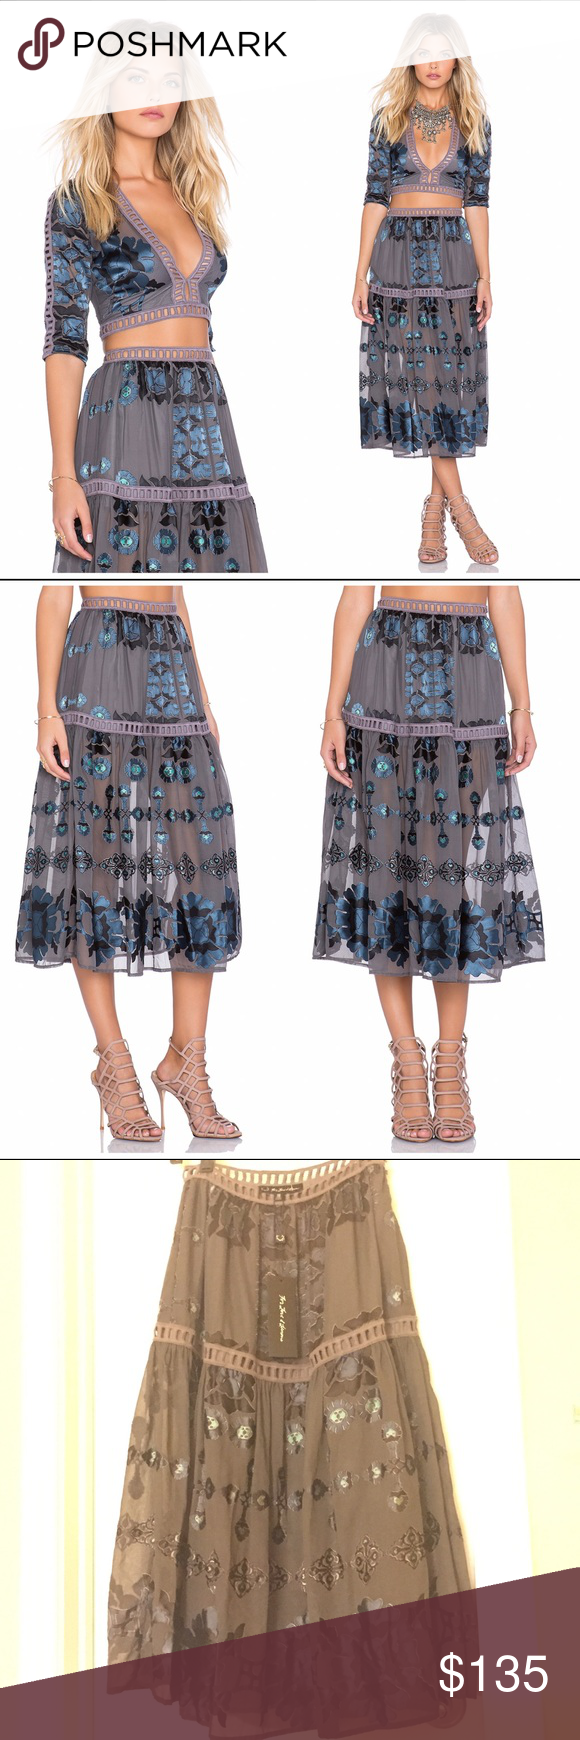 For Love and Lemons Barcelona midi skirt Super adorable for love and lemons Barcelona midi skirt in blue. The skirt is the prettiest mix of blues, grey, and purple! Size small (runs true to size) great for summer! It is lined For Love and Lemons Skirts Midi